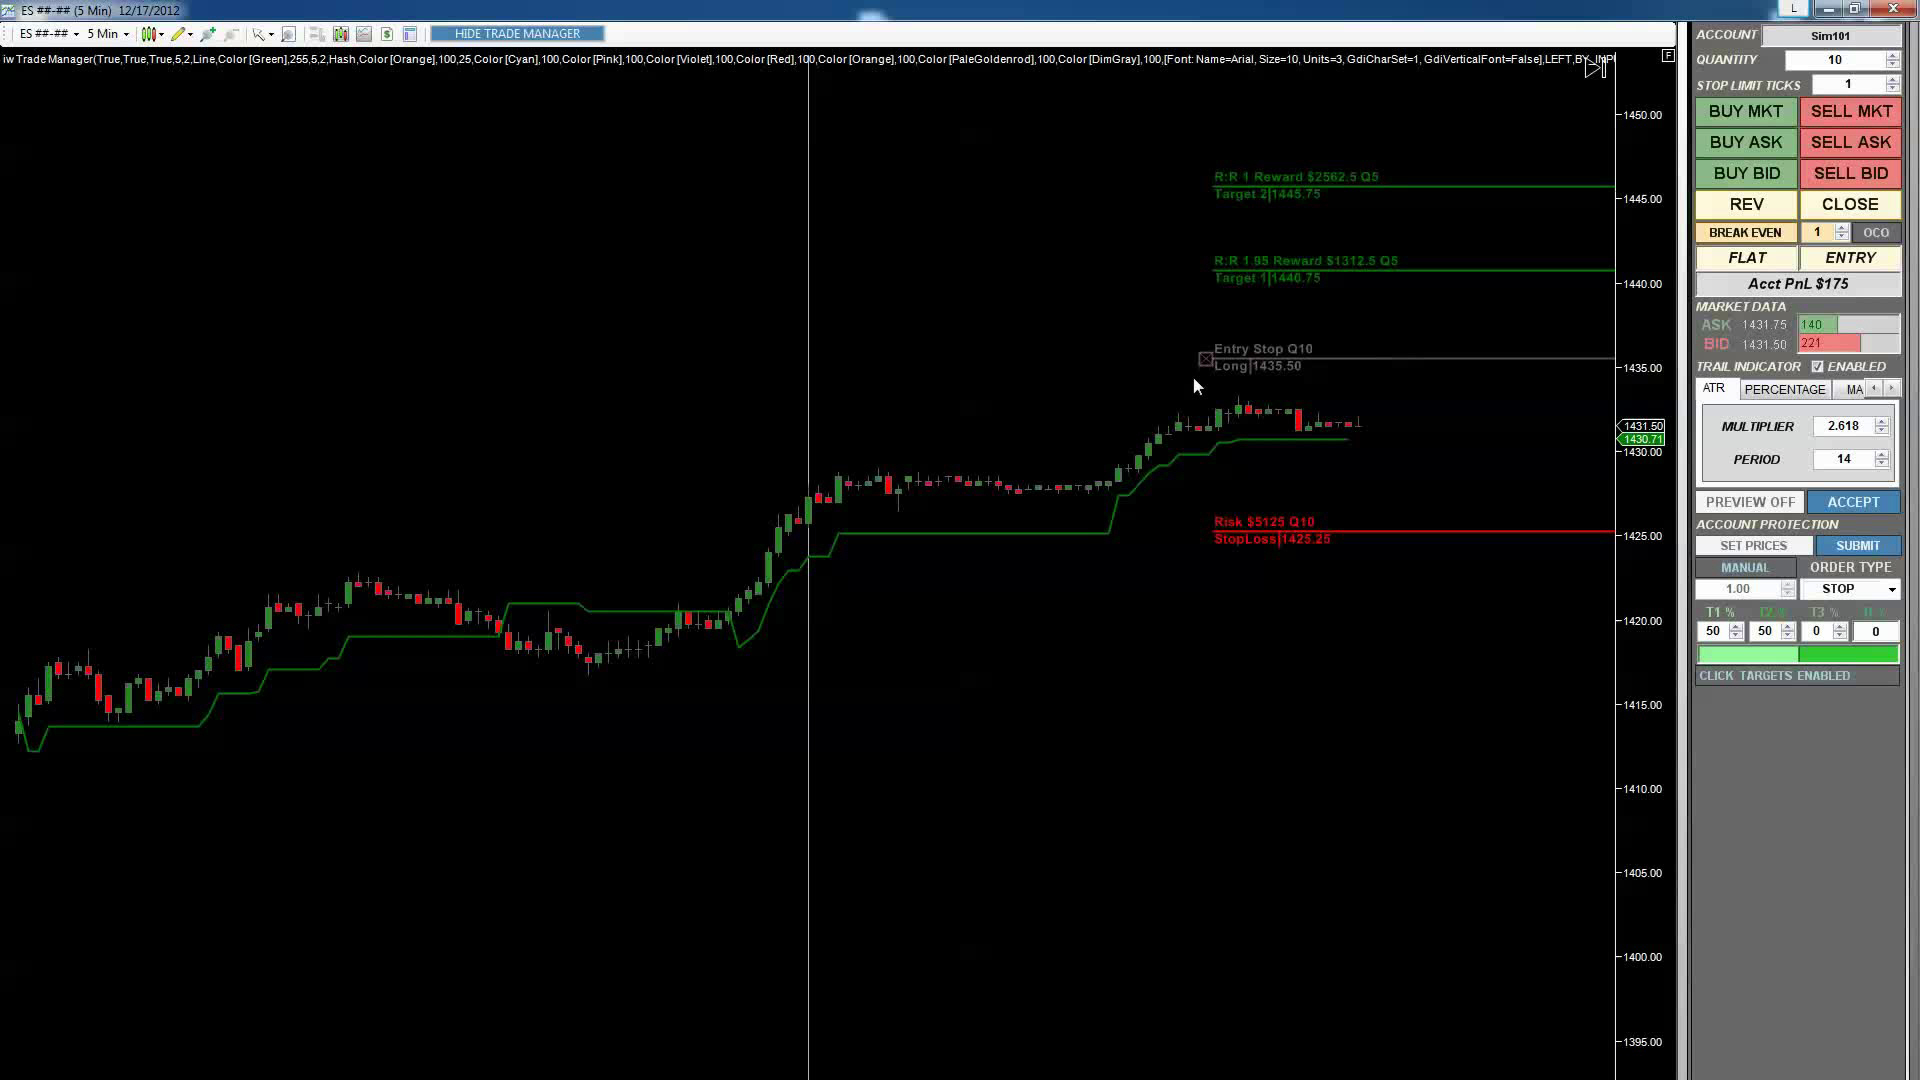 Real time options trading simulator